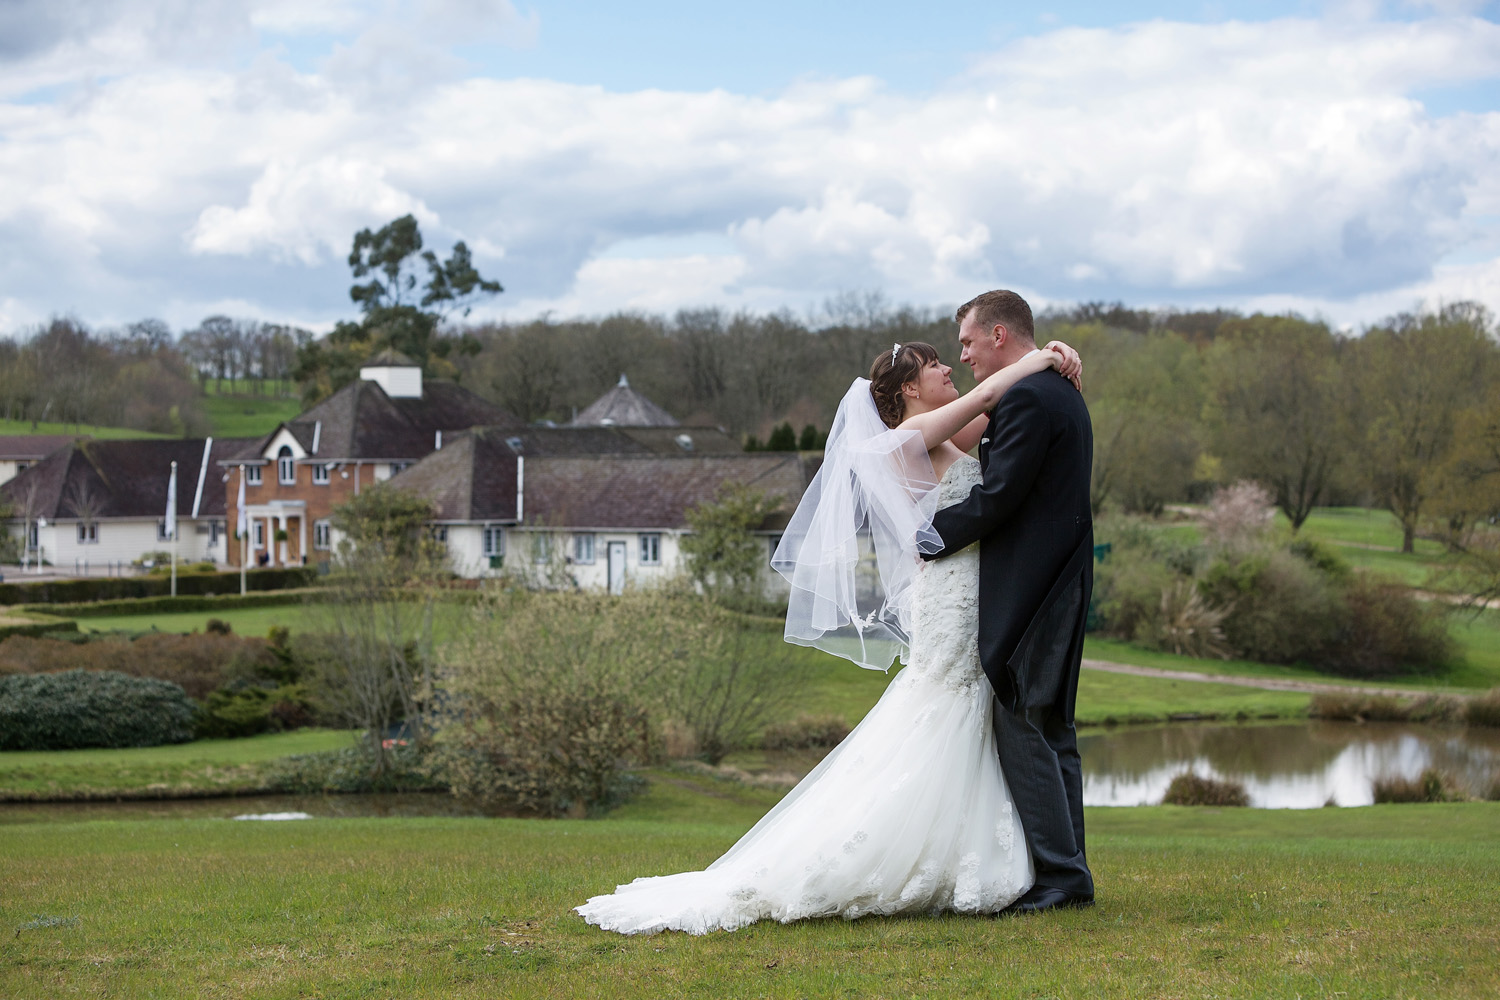 Sandford_Springs_Wedding_Photographer_Newbury_027.jpg